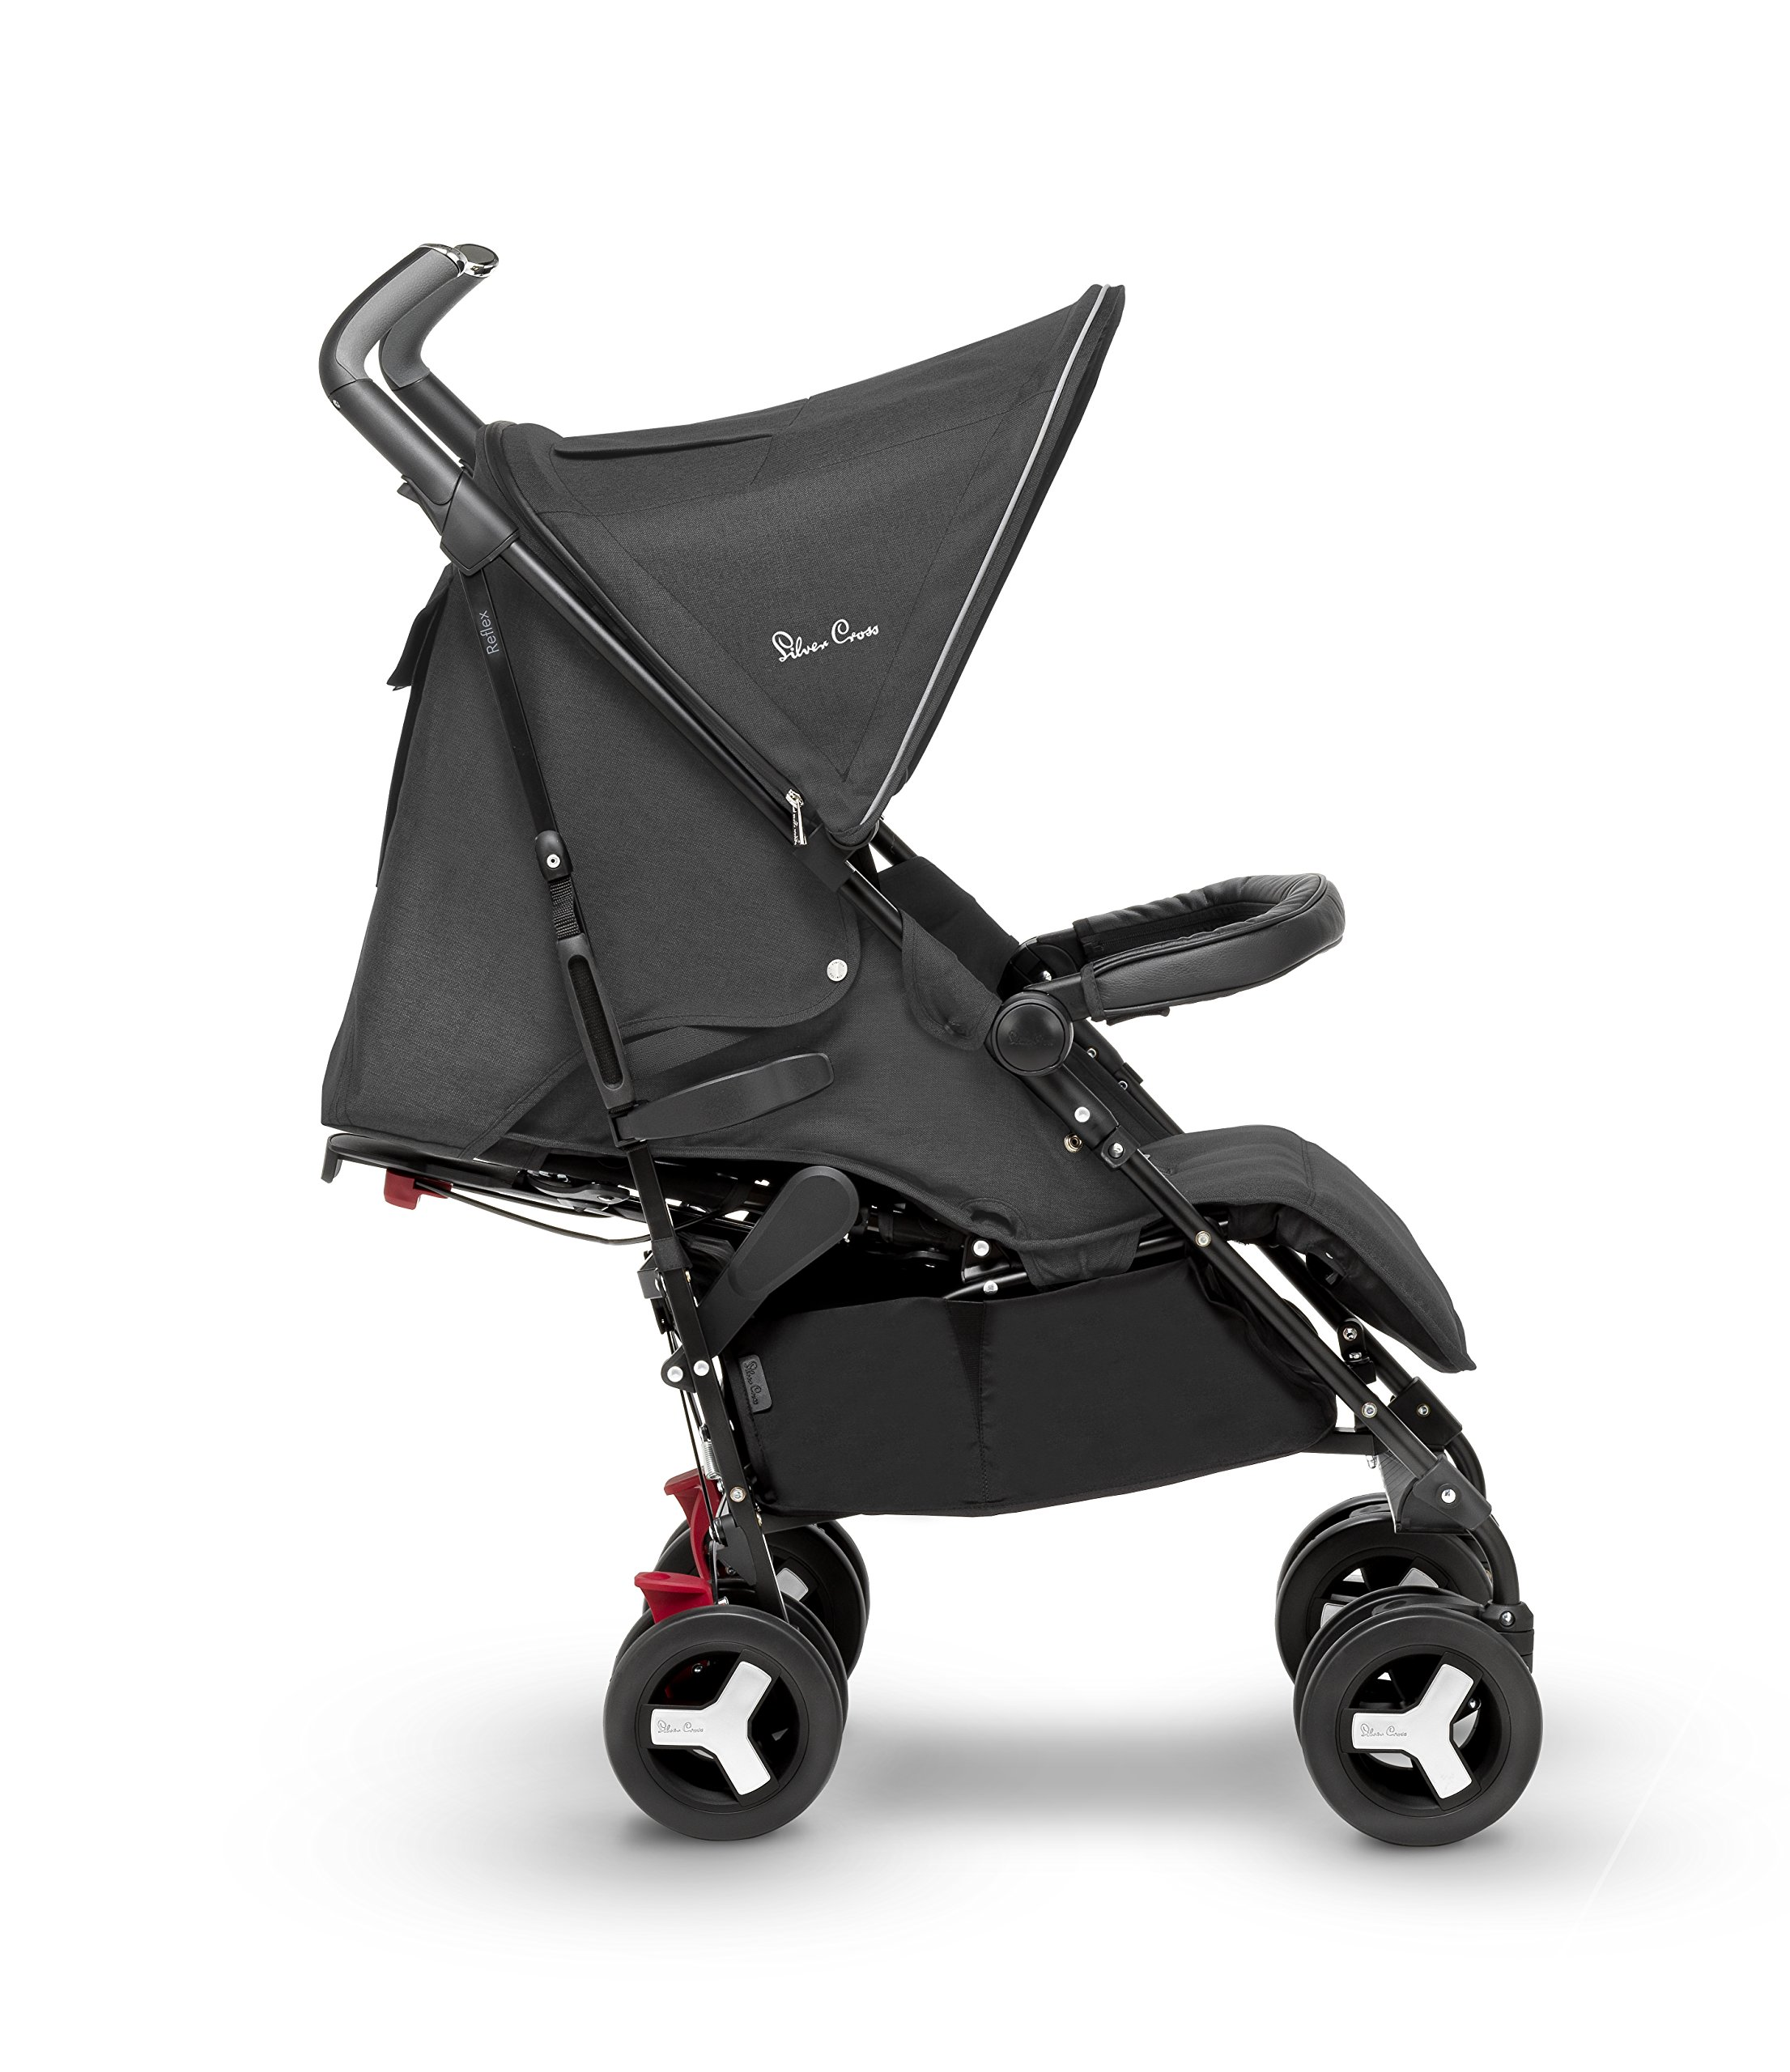 Silver Cross Reflex Stroller, Onyx Silver Cross Reflex is an advanced stroller, suitable from birth up to 25kg, with a wealth of features 5-point Harness Combine with Silver Cross Simplicity Car Seat to create a convenient Travel System 1